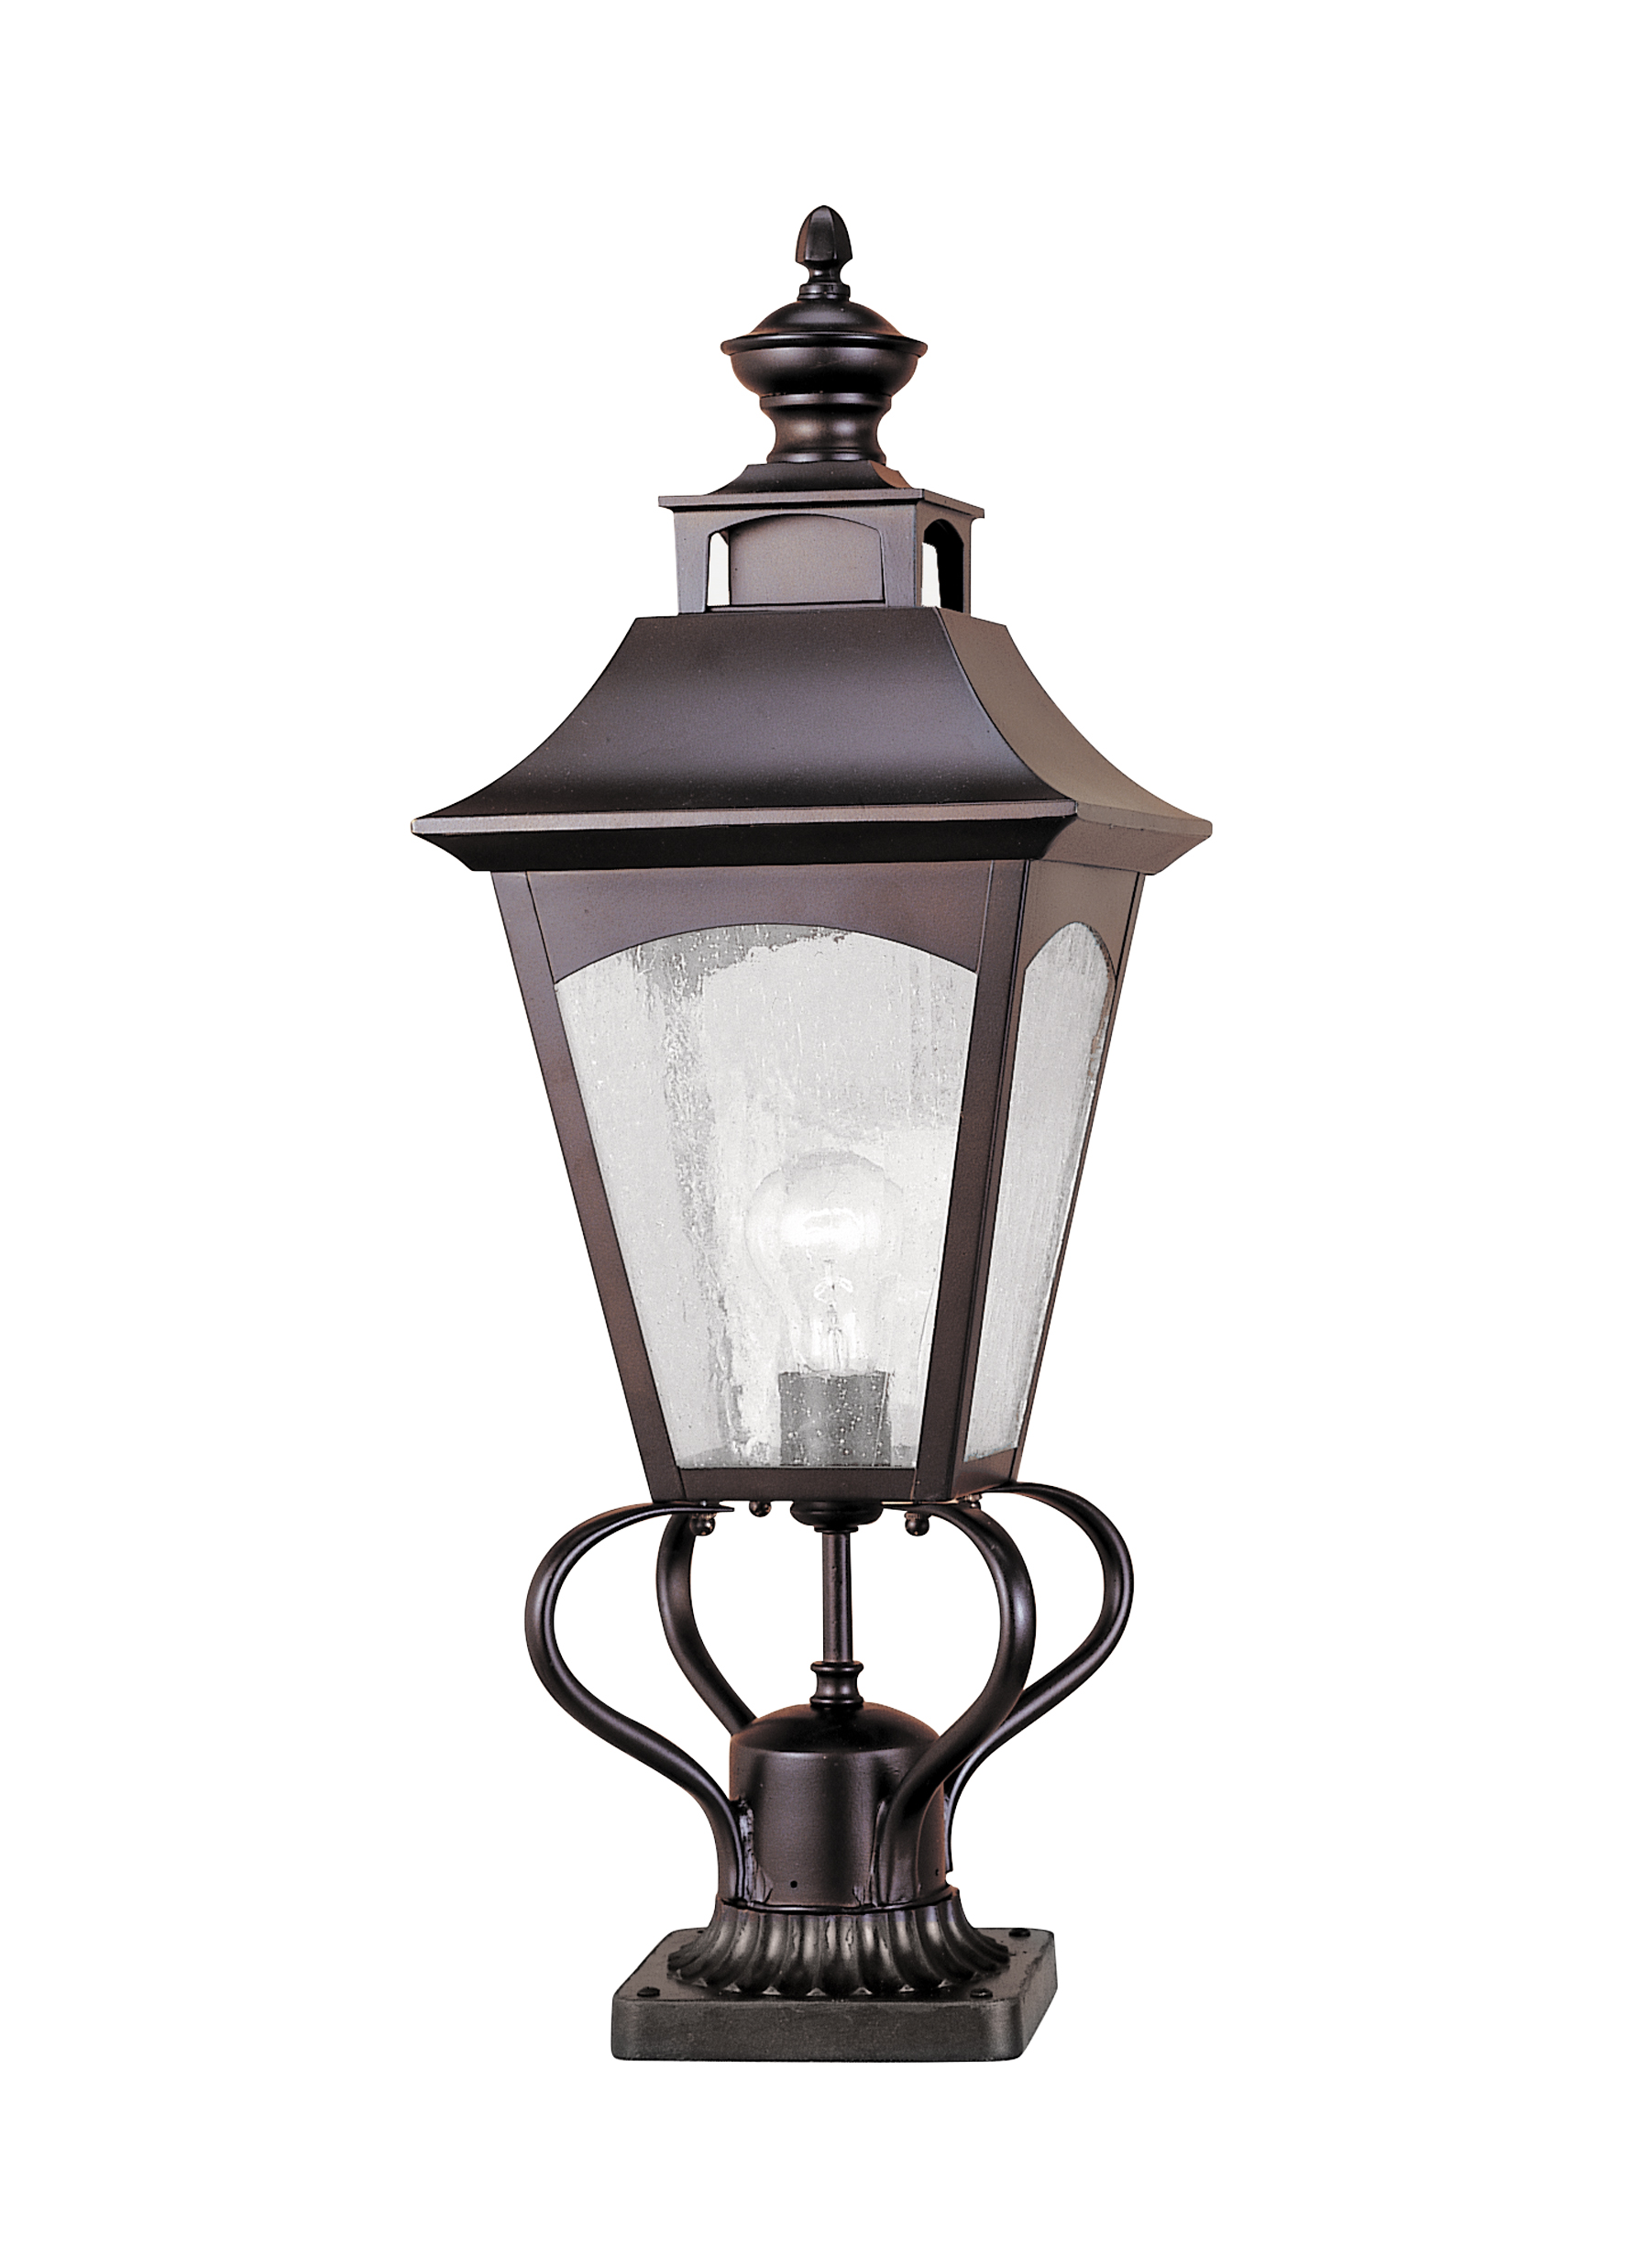 Ol1007orb 1 Light Post Oil Rubbed Bronze